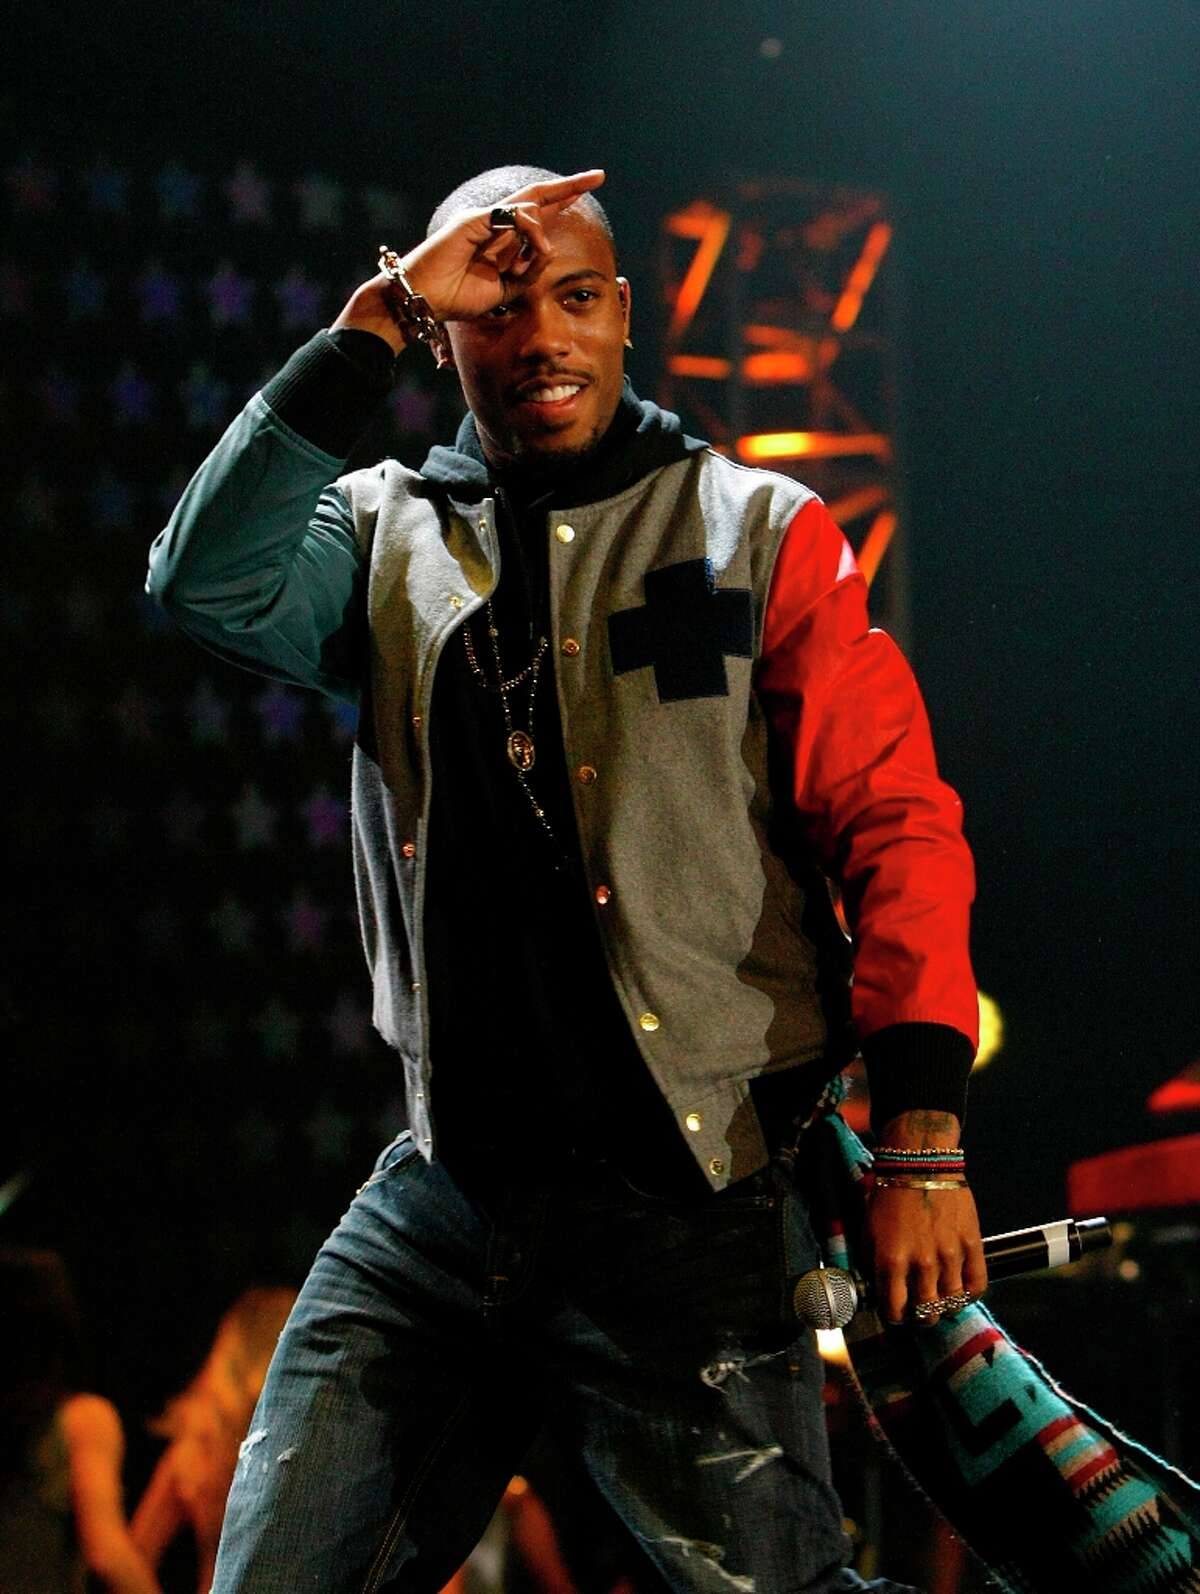 B.o.B. Just this week, rapper B.o.B. ranted on Twitter about believing the Earth is flat. The tweet battle was soon joined by famous astrophysicist Neil de Grasse Tyson, who begged to differ.